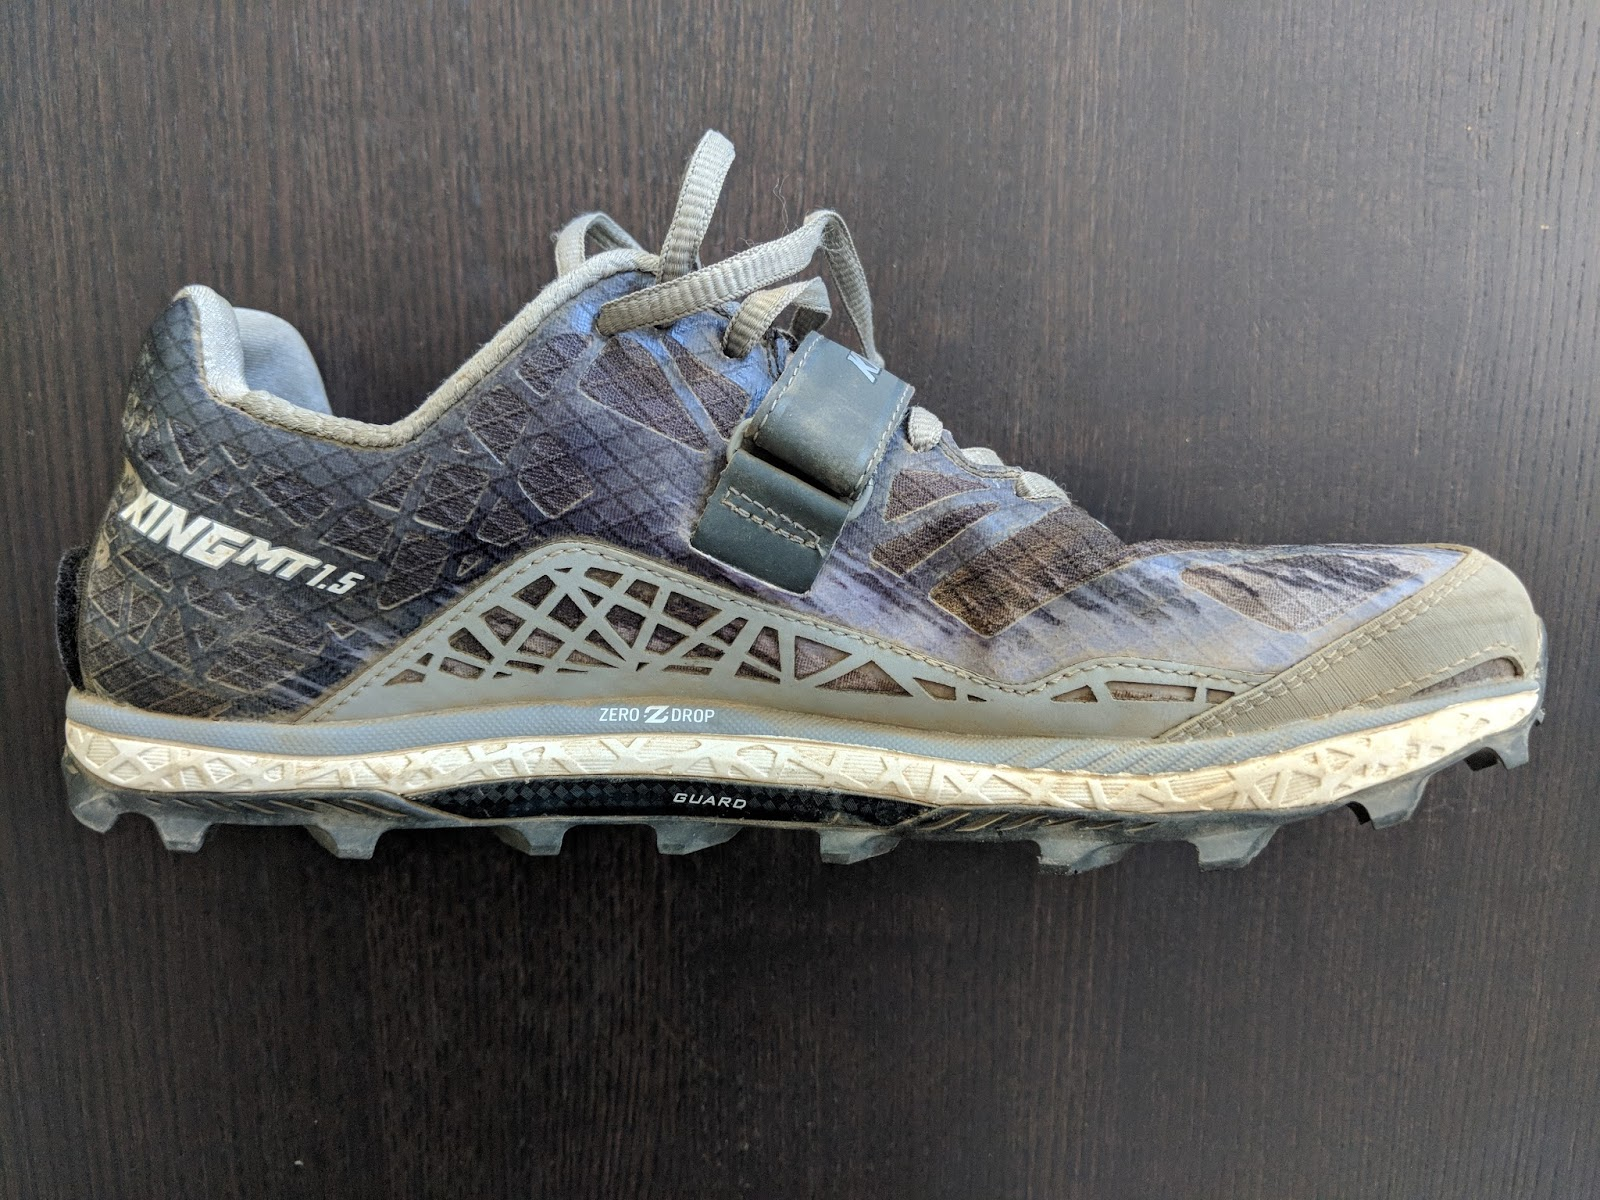 29cfcb360386 Road Trail Run  Altra King MT 1.5 Trail Shoe Review  Can it Conquer ...